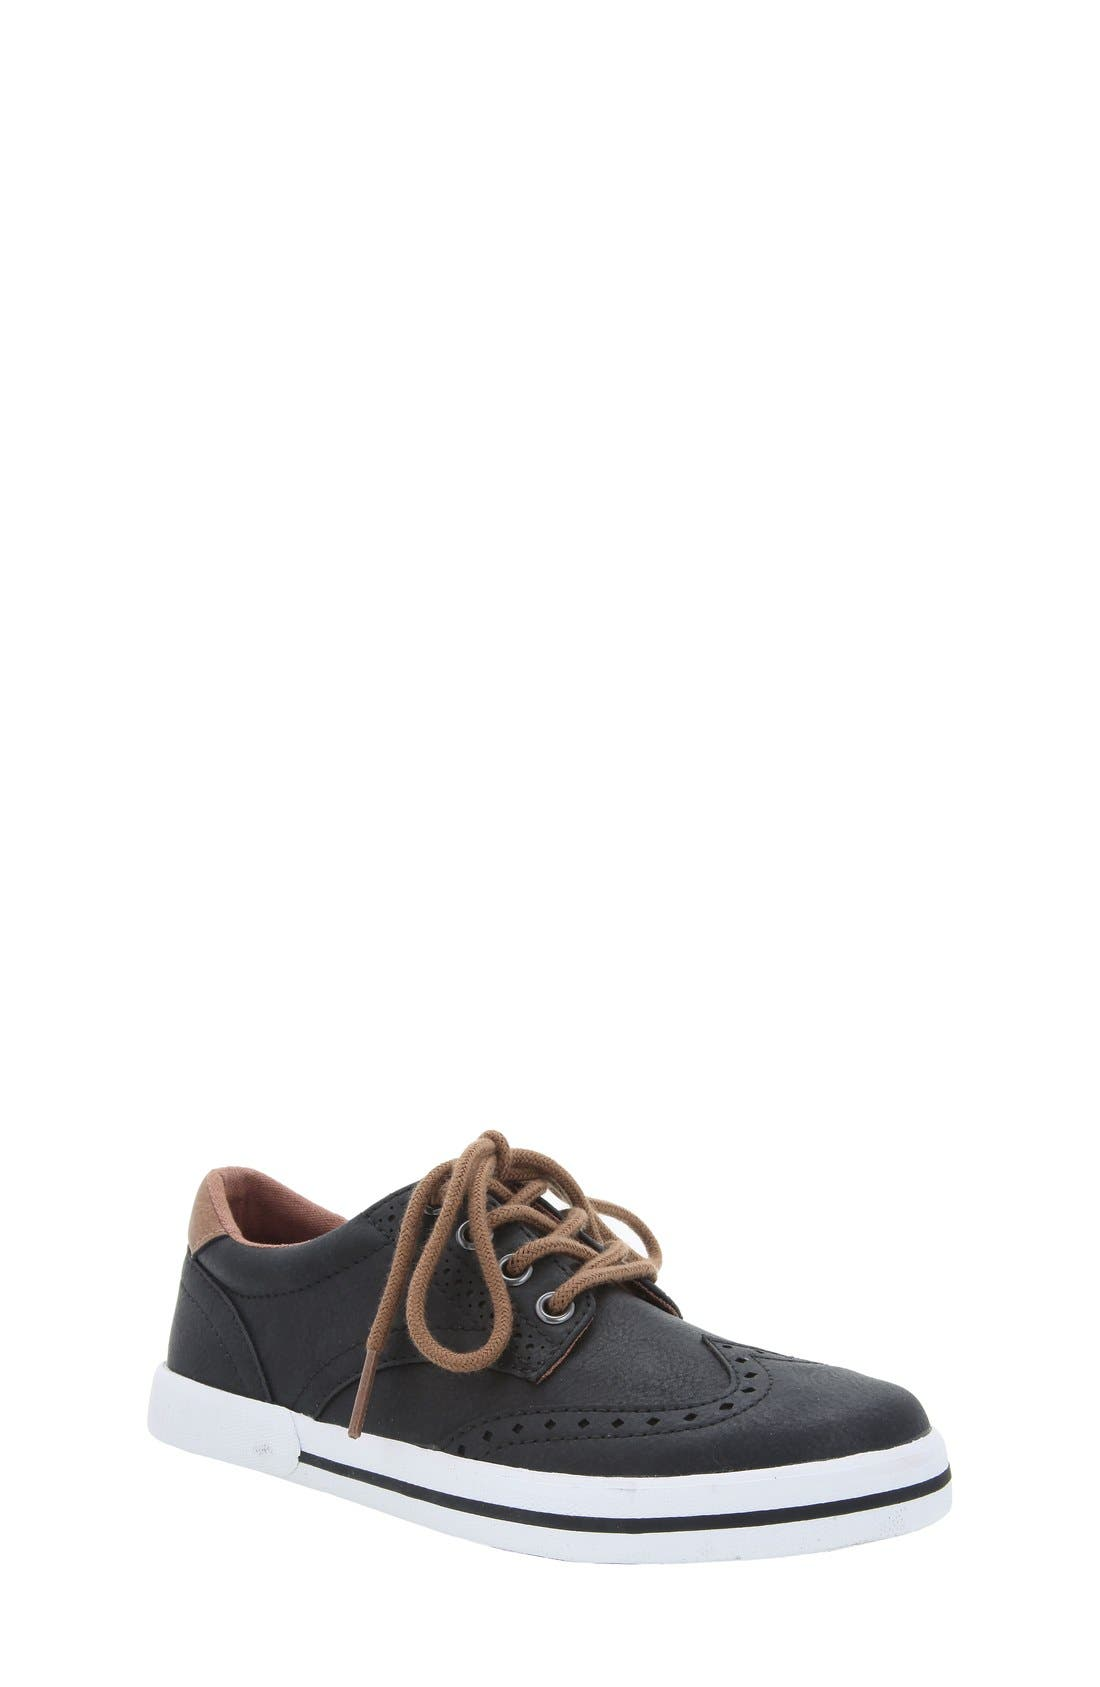 'Jimmy' Sneaker,                         Main,                         color, 008